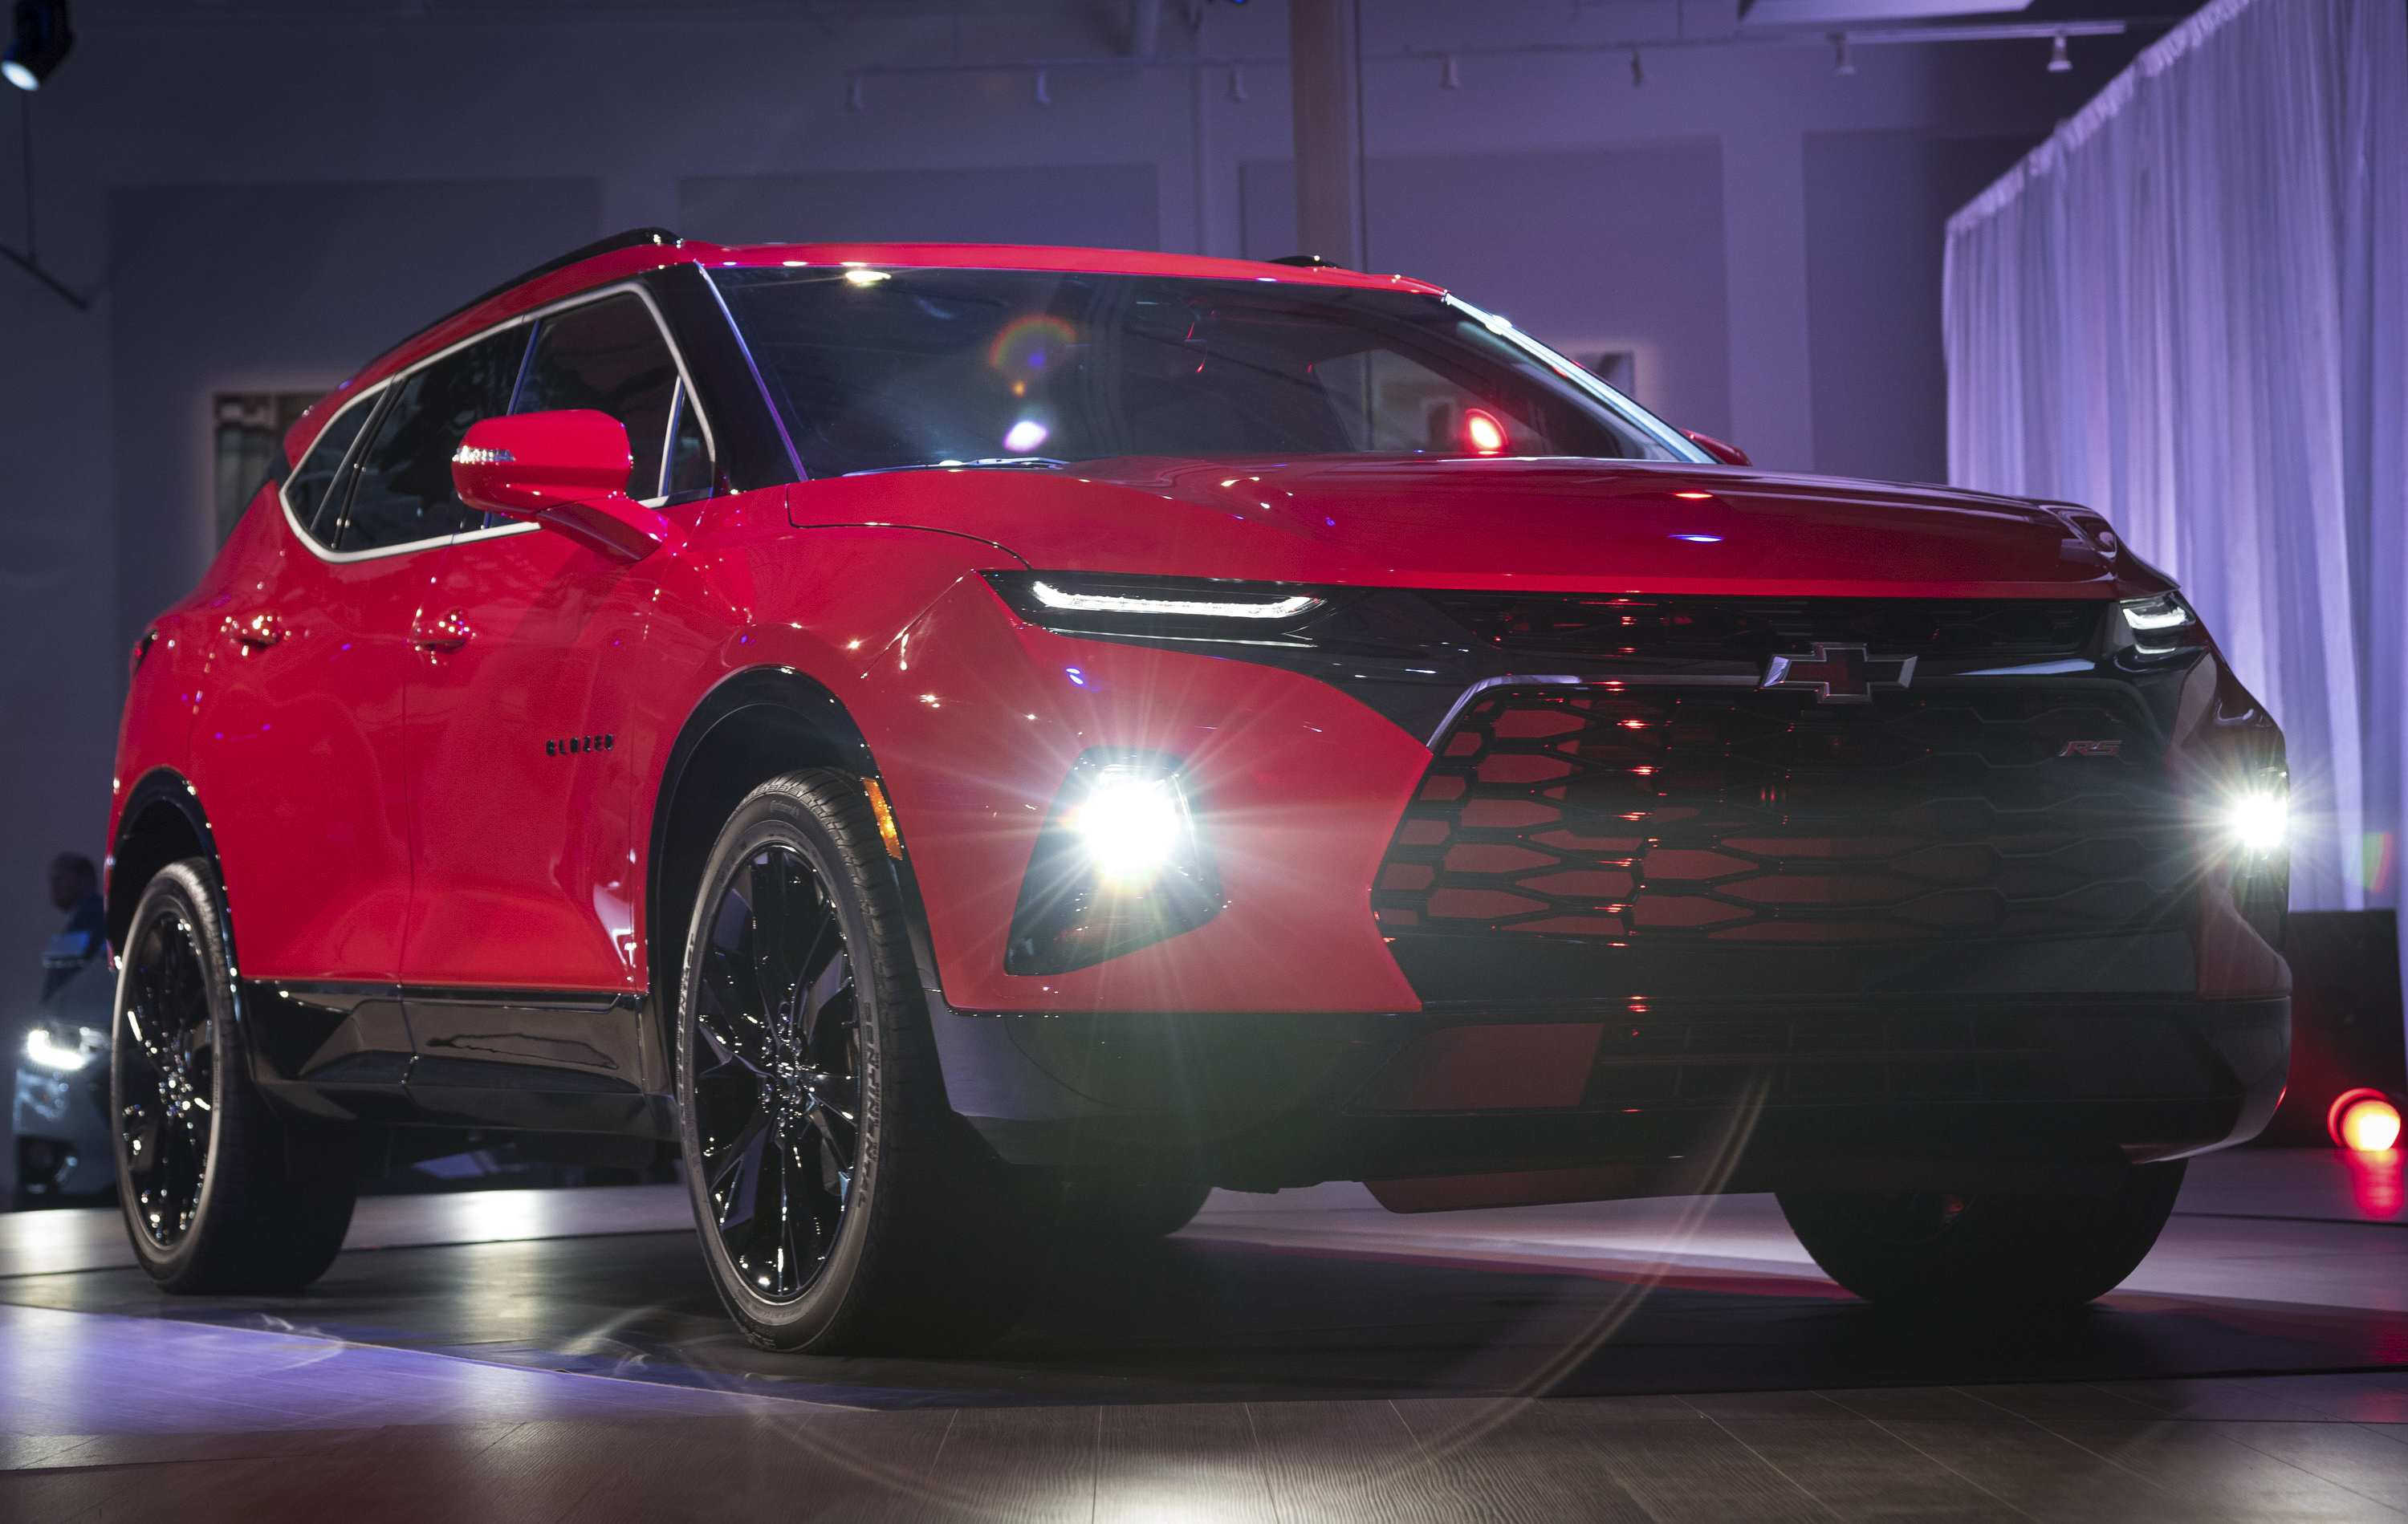 94 All New Chevrolet Blazer Xl 2020 Redesign And Review